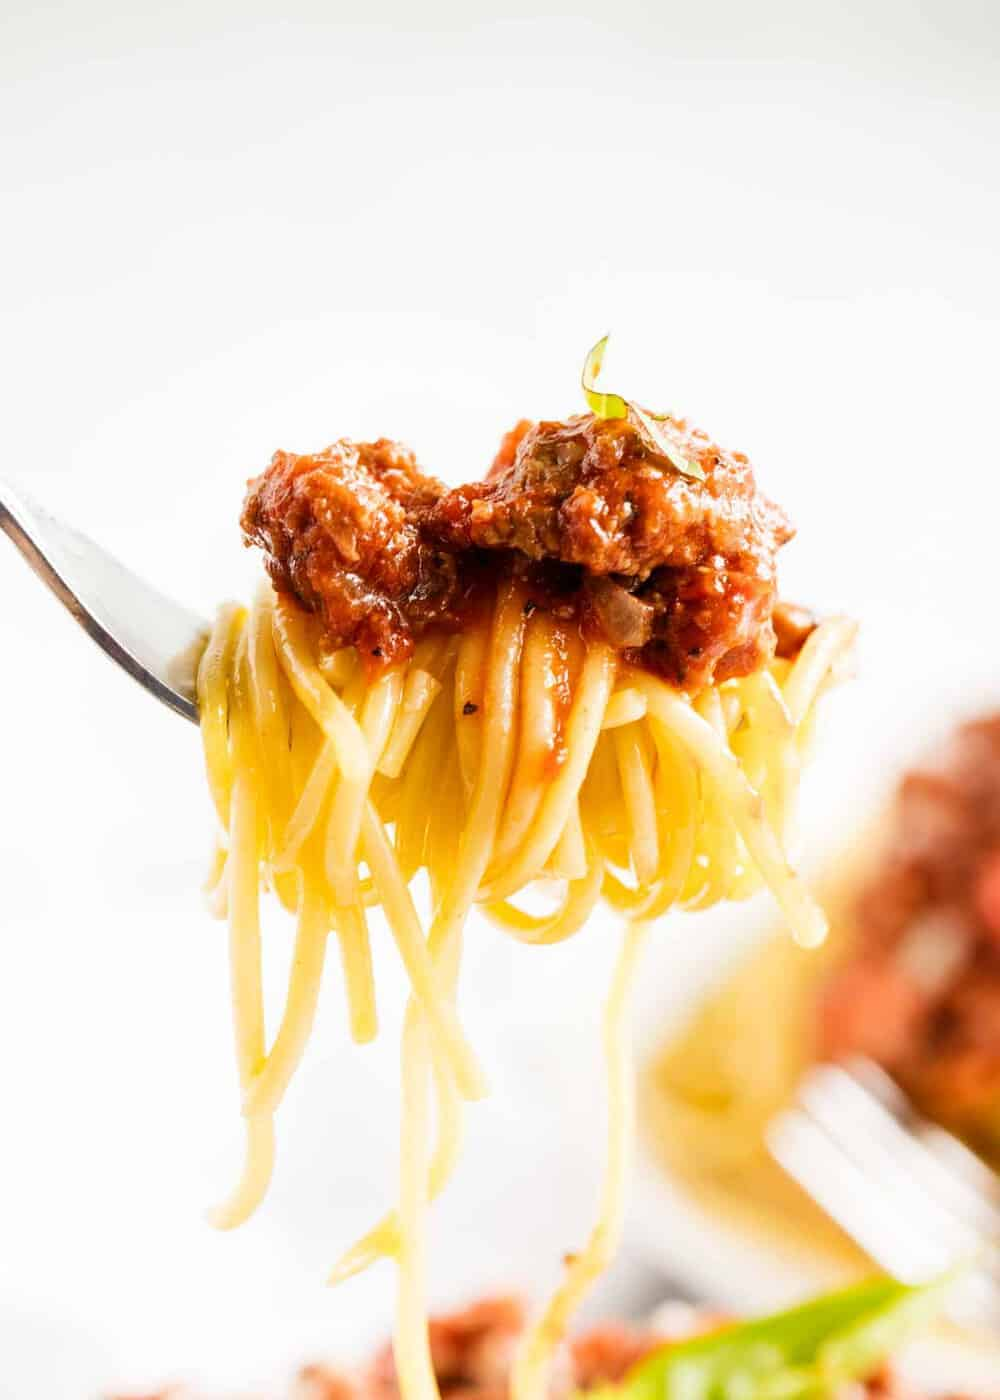 spaghetti with ground beef on a fork